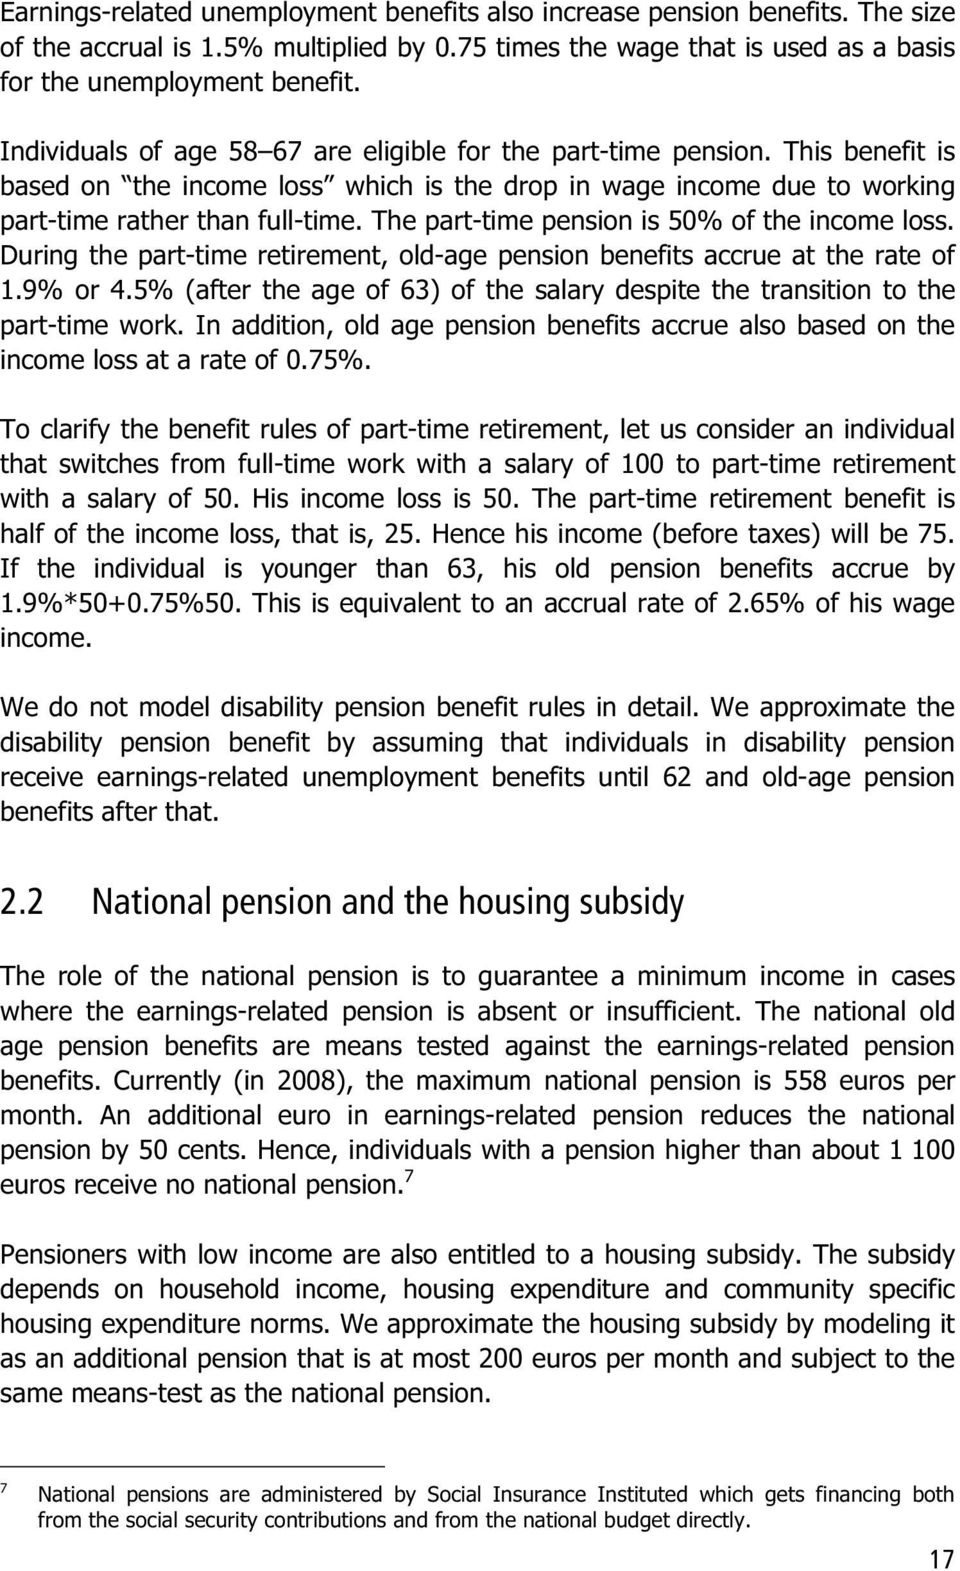 The part-time pension is 50% of the income loss. During the part-time retirement, old-age pension benefits accrue at the rate of 1.9% or 4.